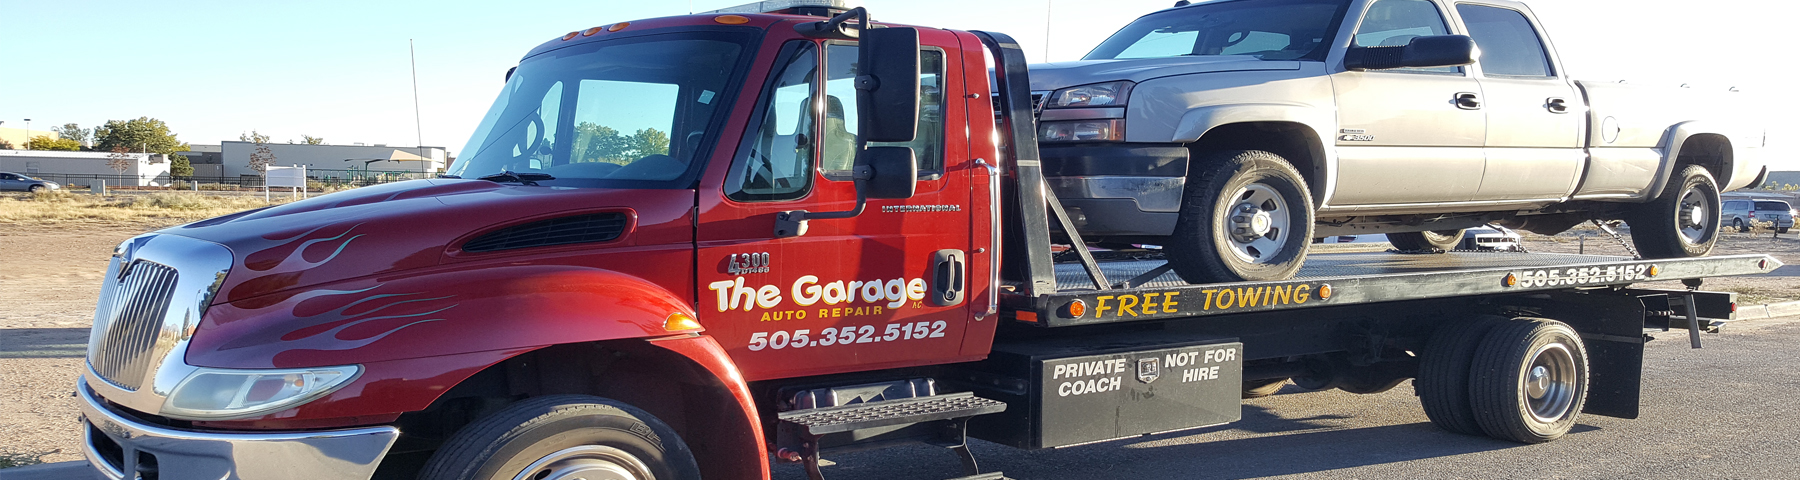 Garage Experts Of The Central Valley The Garage Expert Auto Repair Albuquerque Nm 87120